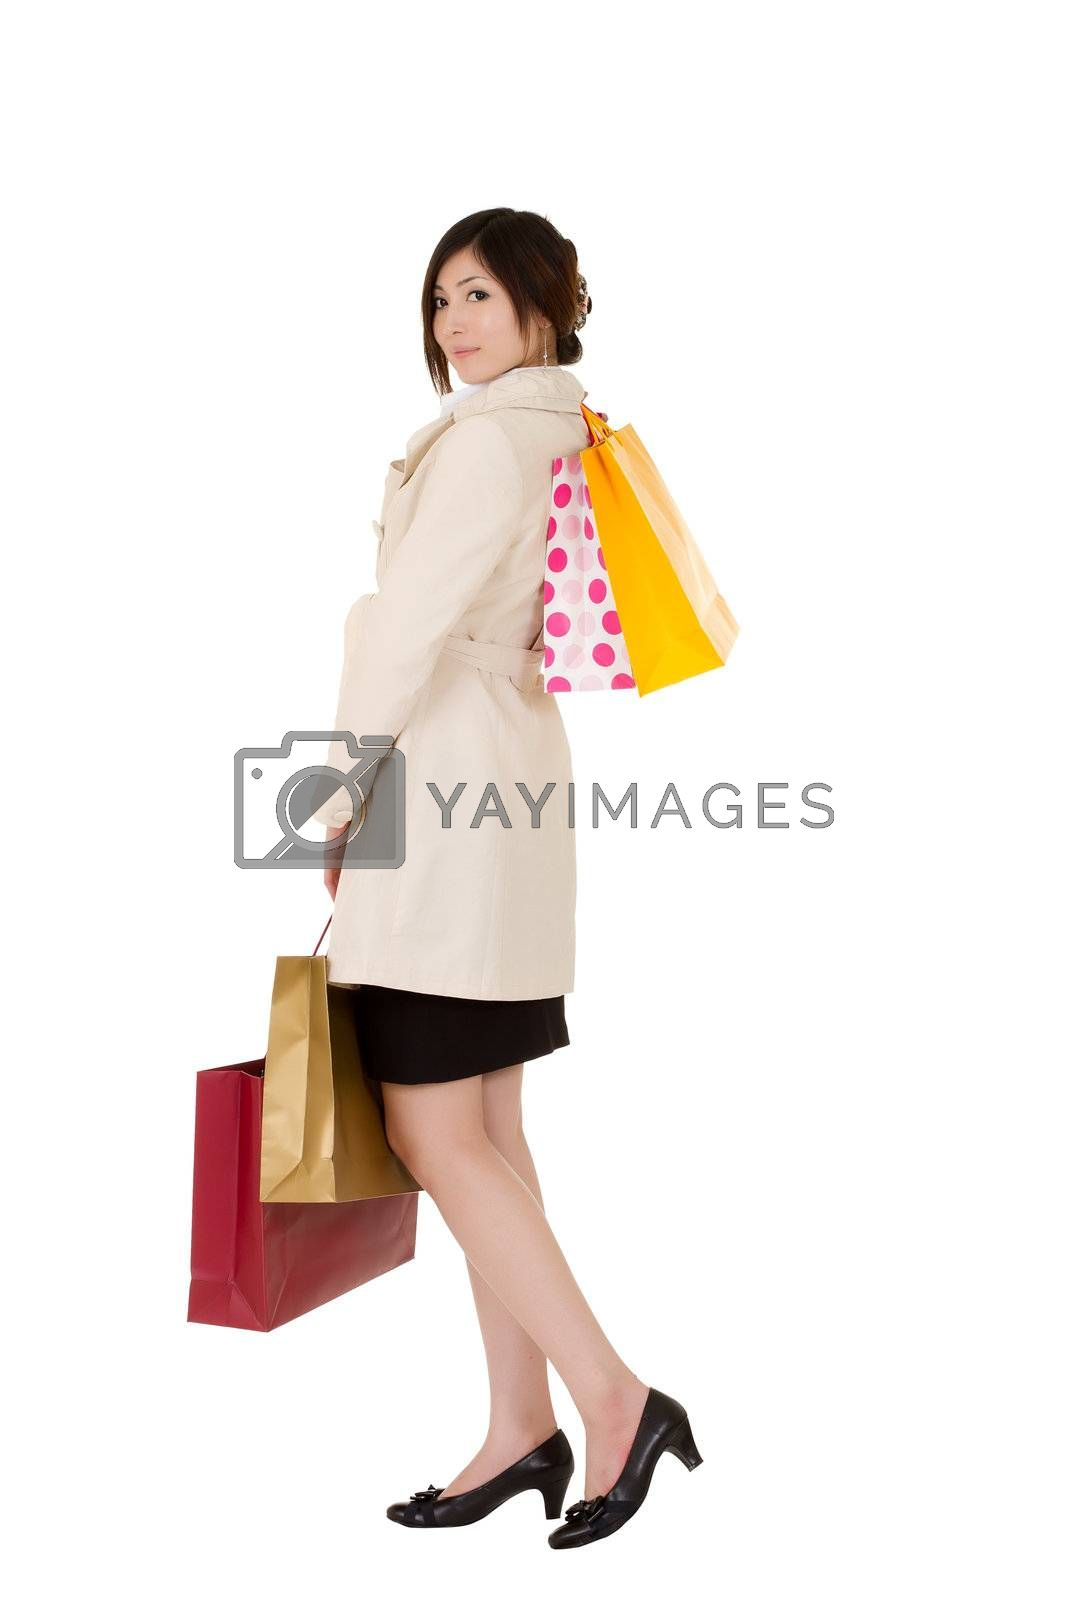 Royalty free image of Young lady shopping by elwynn